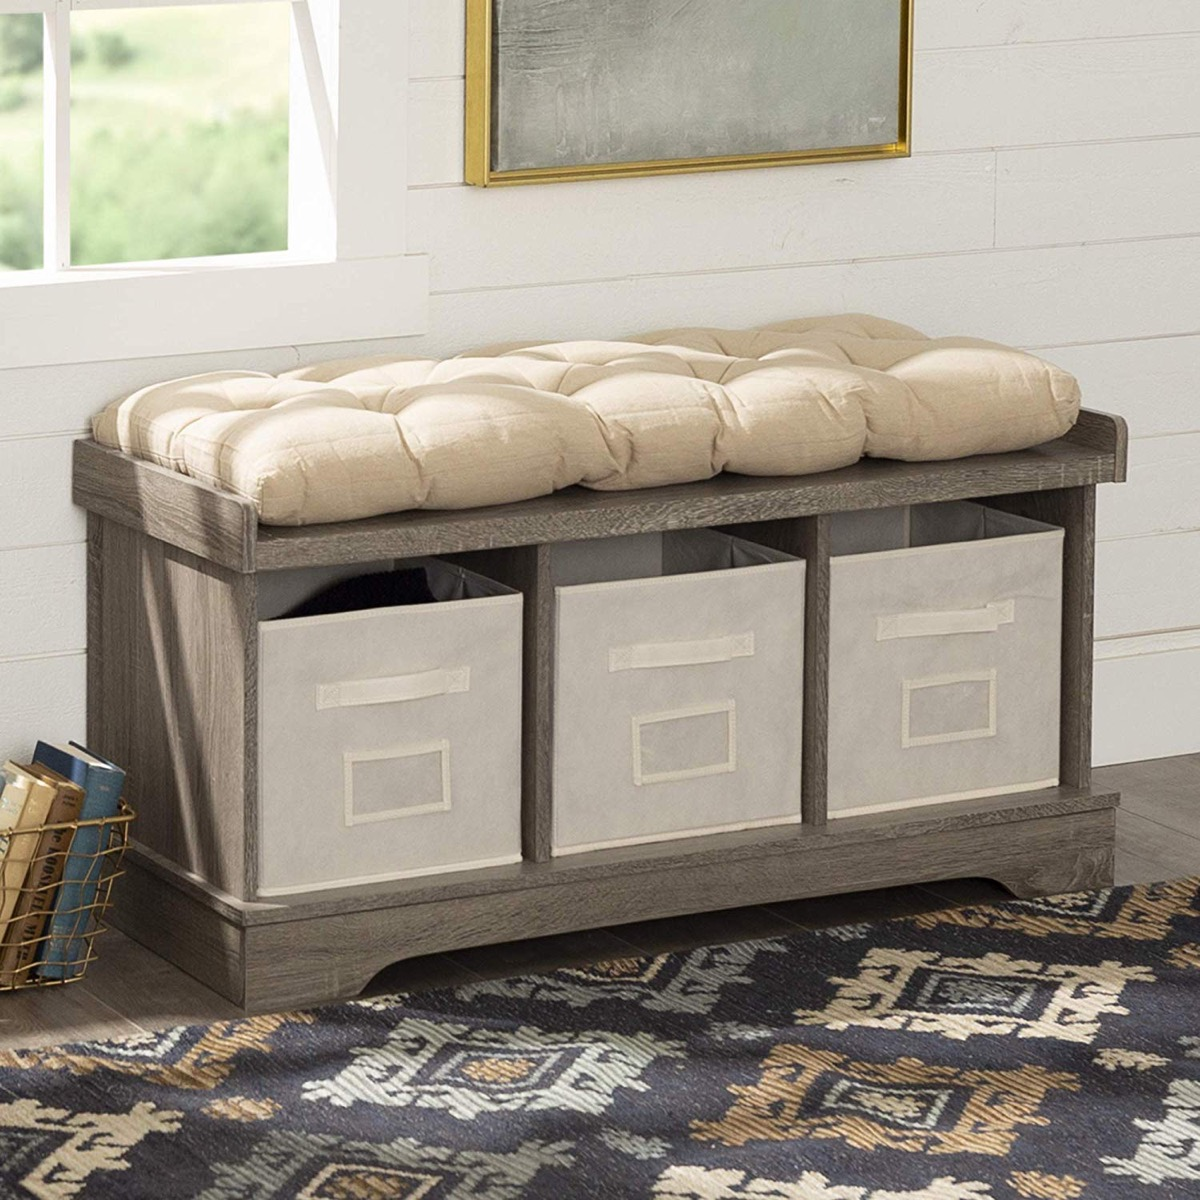 Cool 51 Storage Benches To Streamline Your Seating And Storage Beatyapartments Chair Design Images Beatyapartmentscom